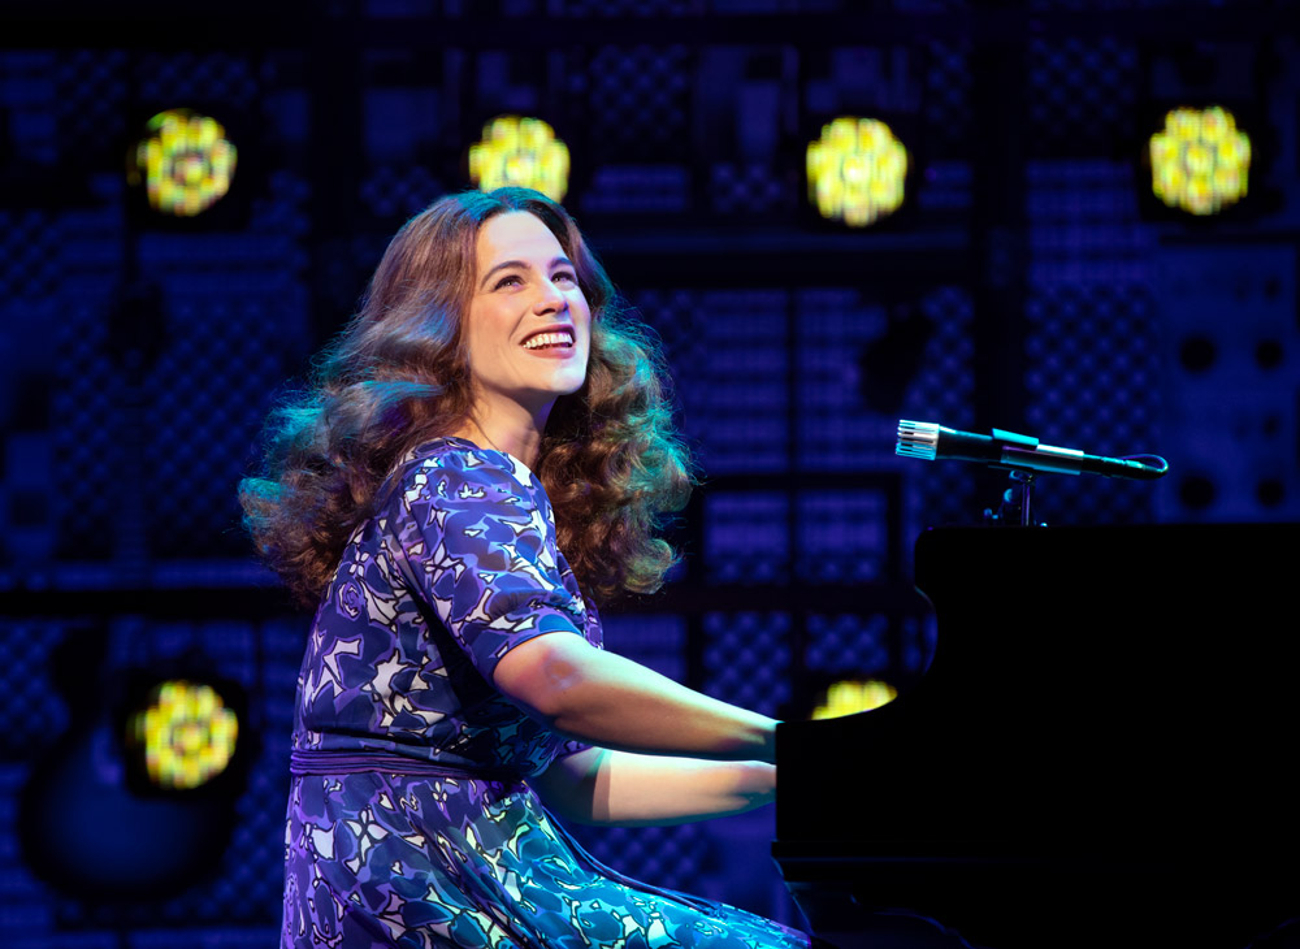 BWW Review: BEAUTIFUL: THE CAROLE KING MUSICAL Will Move the Earth Under Your Feet at AT&T Performing Arts Center